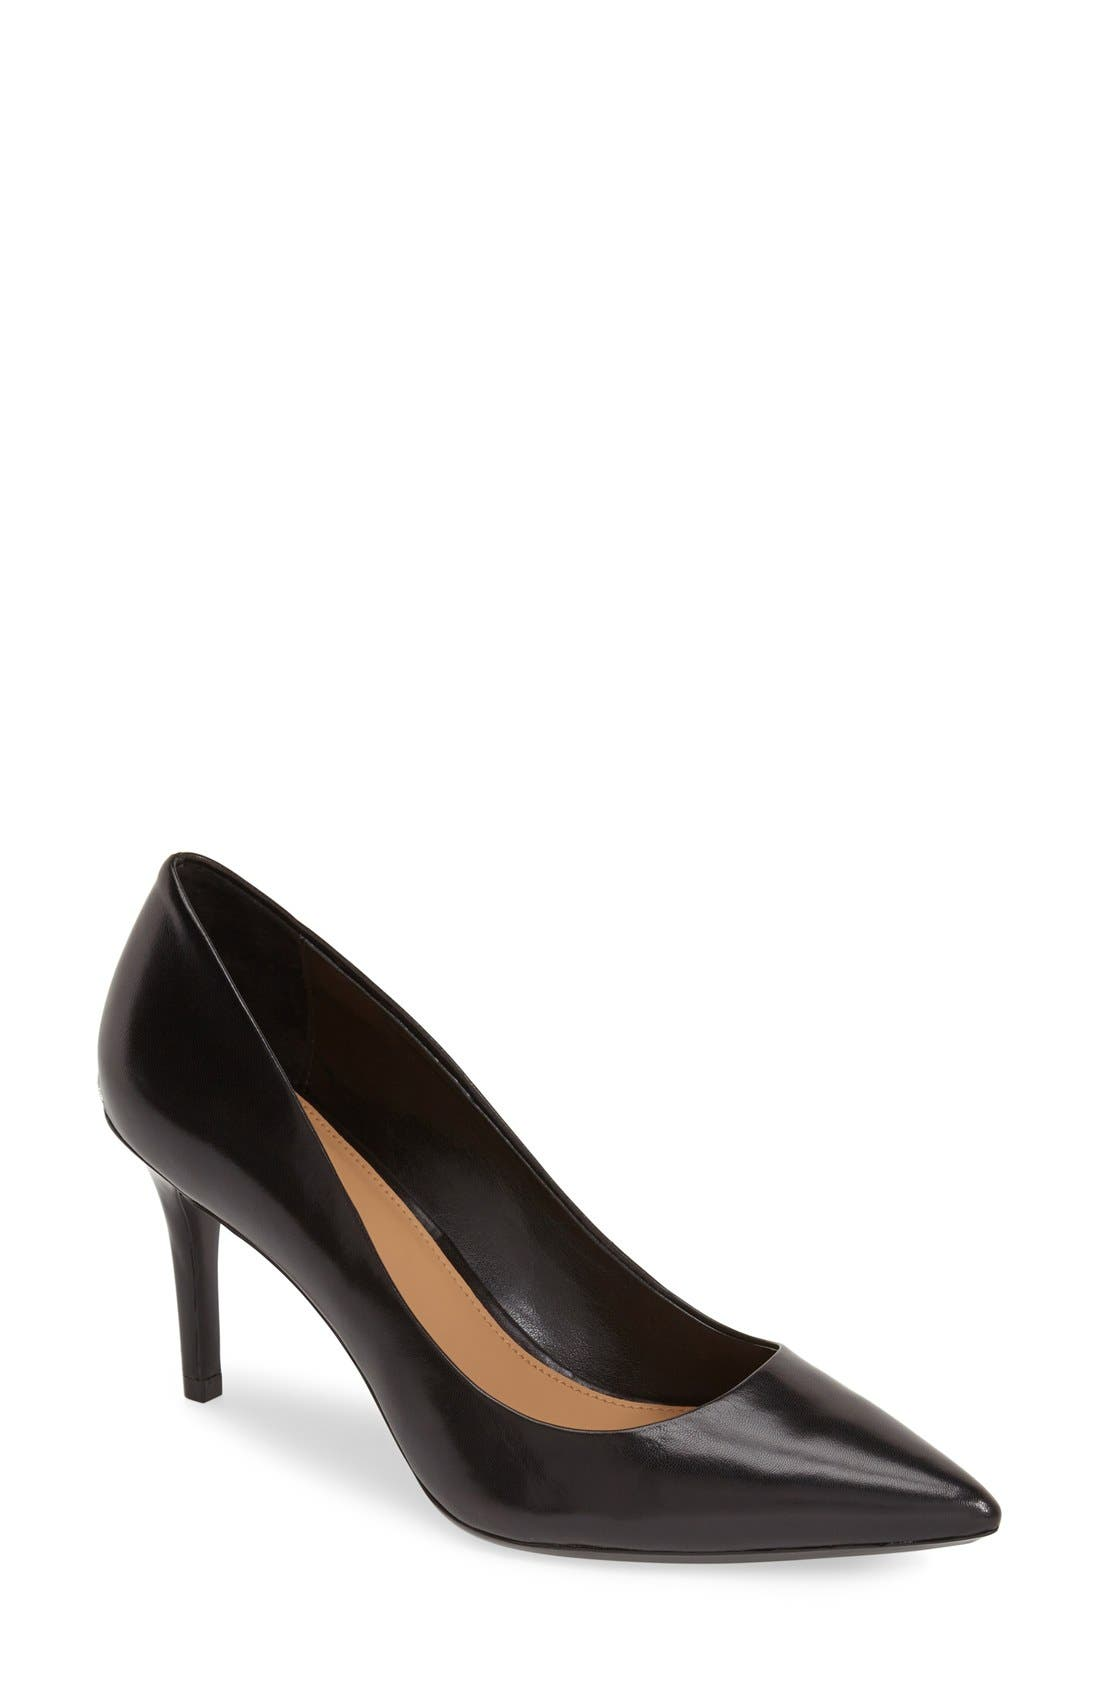 'Gayle' Pointy Toe Pump,                         Main,                         color, BLACK LEATHER